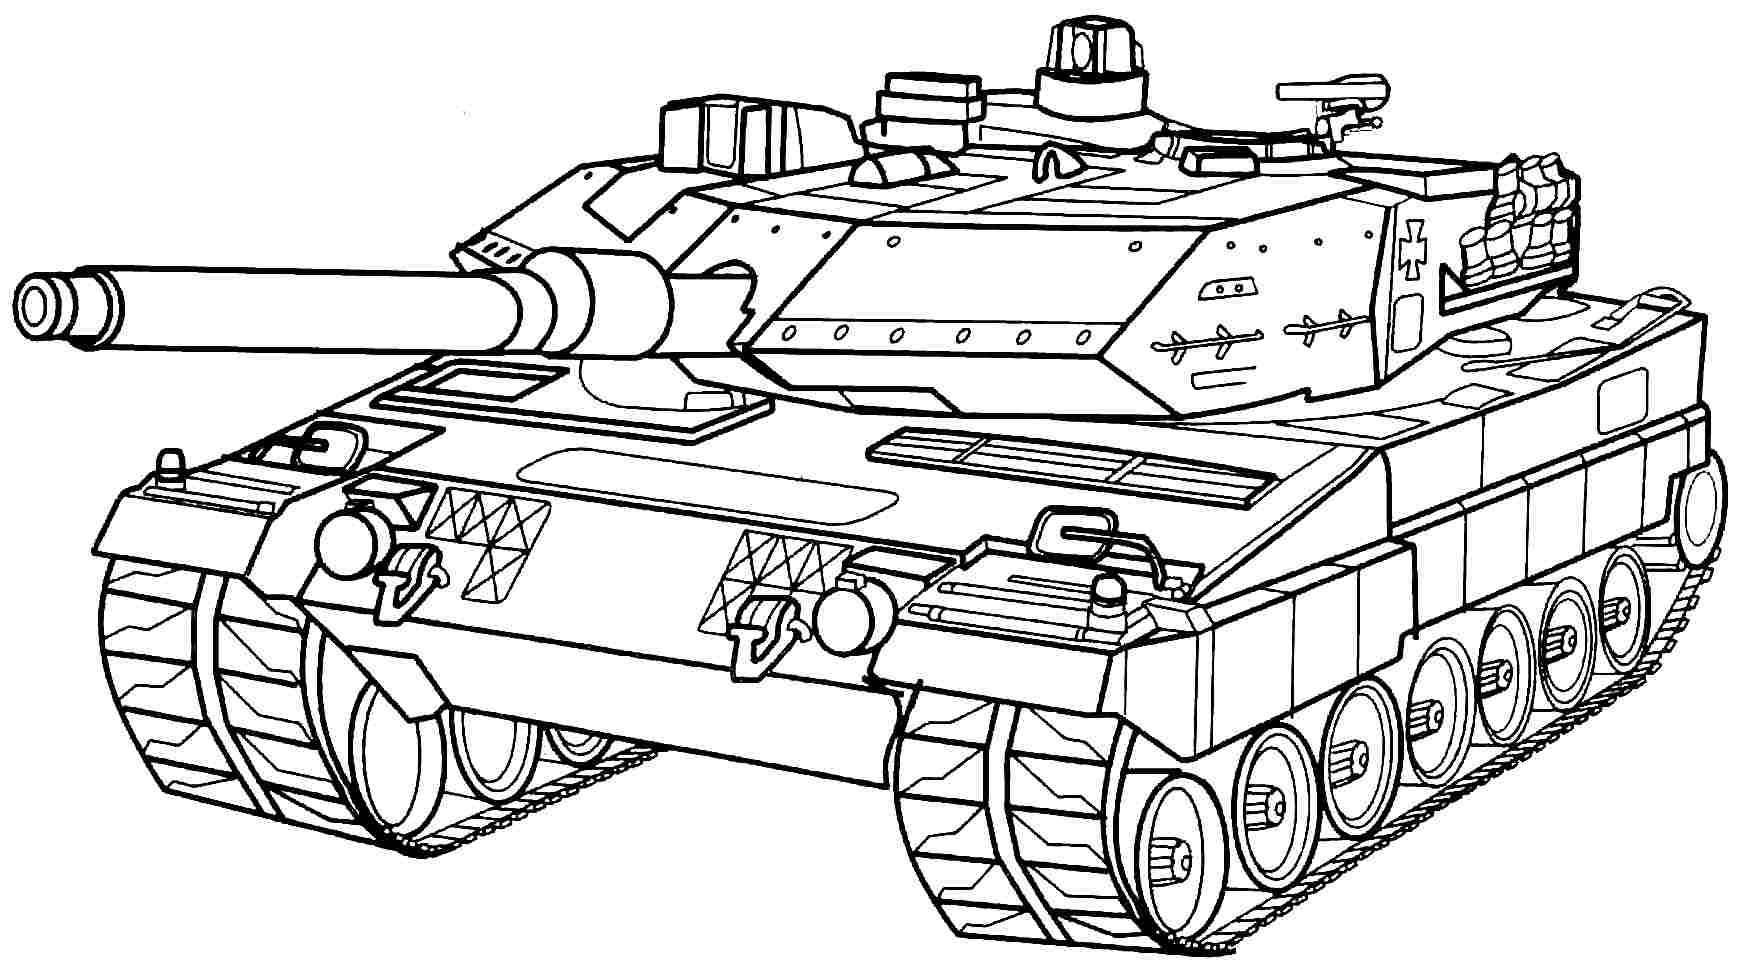 Ww2 tank coloring pages battle coloring pages